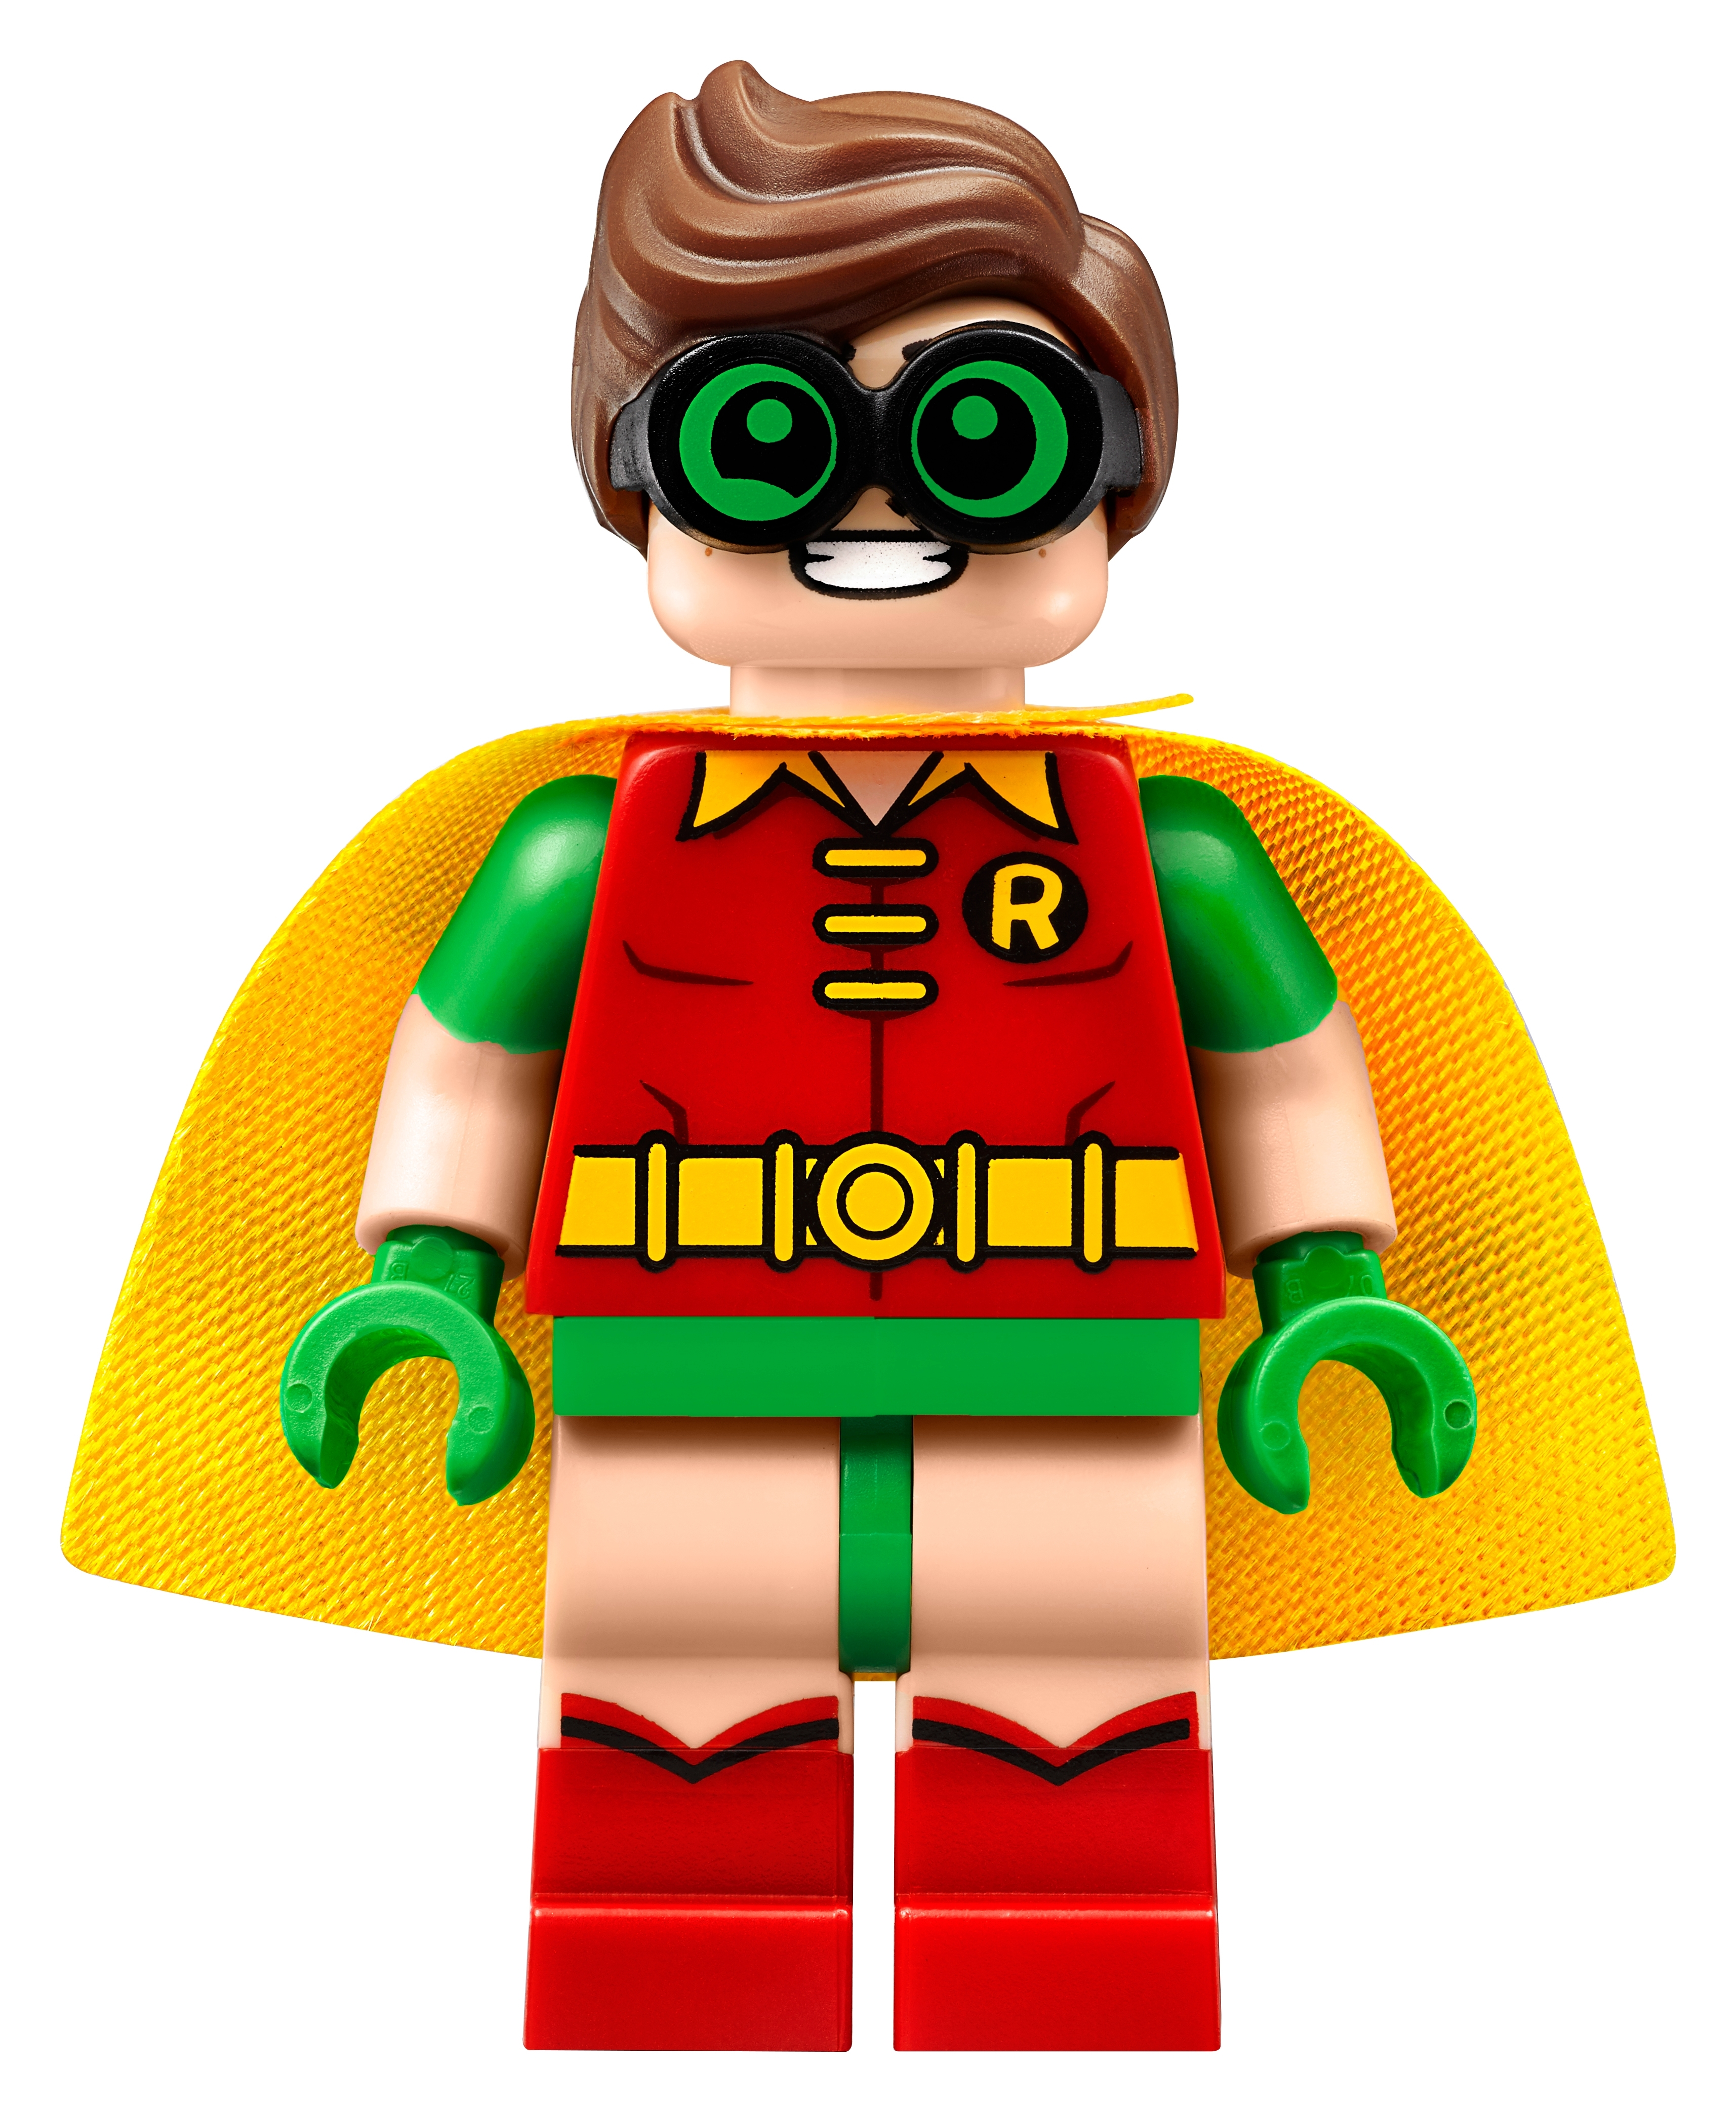 Harleen Quinzel 70912 Red Glasses Batman Movie Super Heroes Minifigure Lego Dr